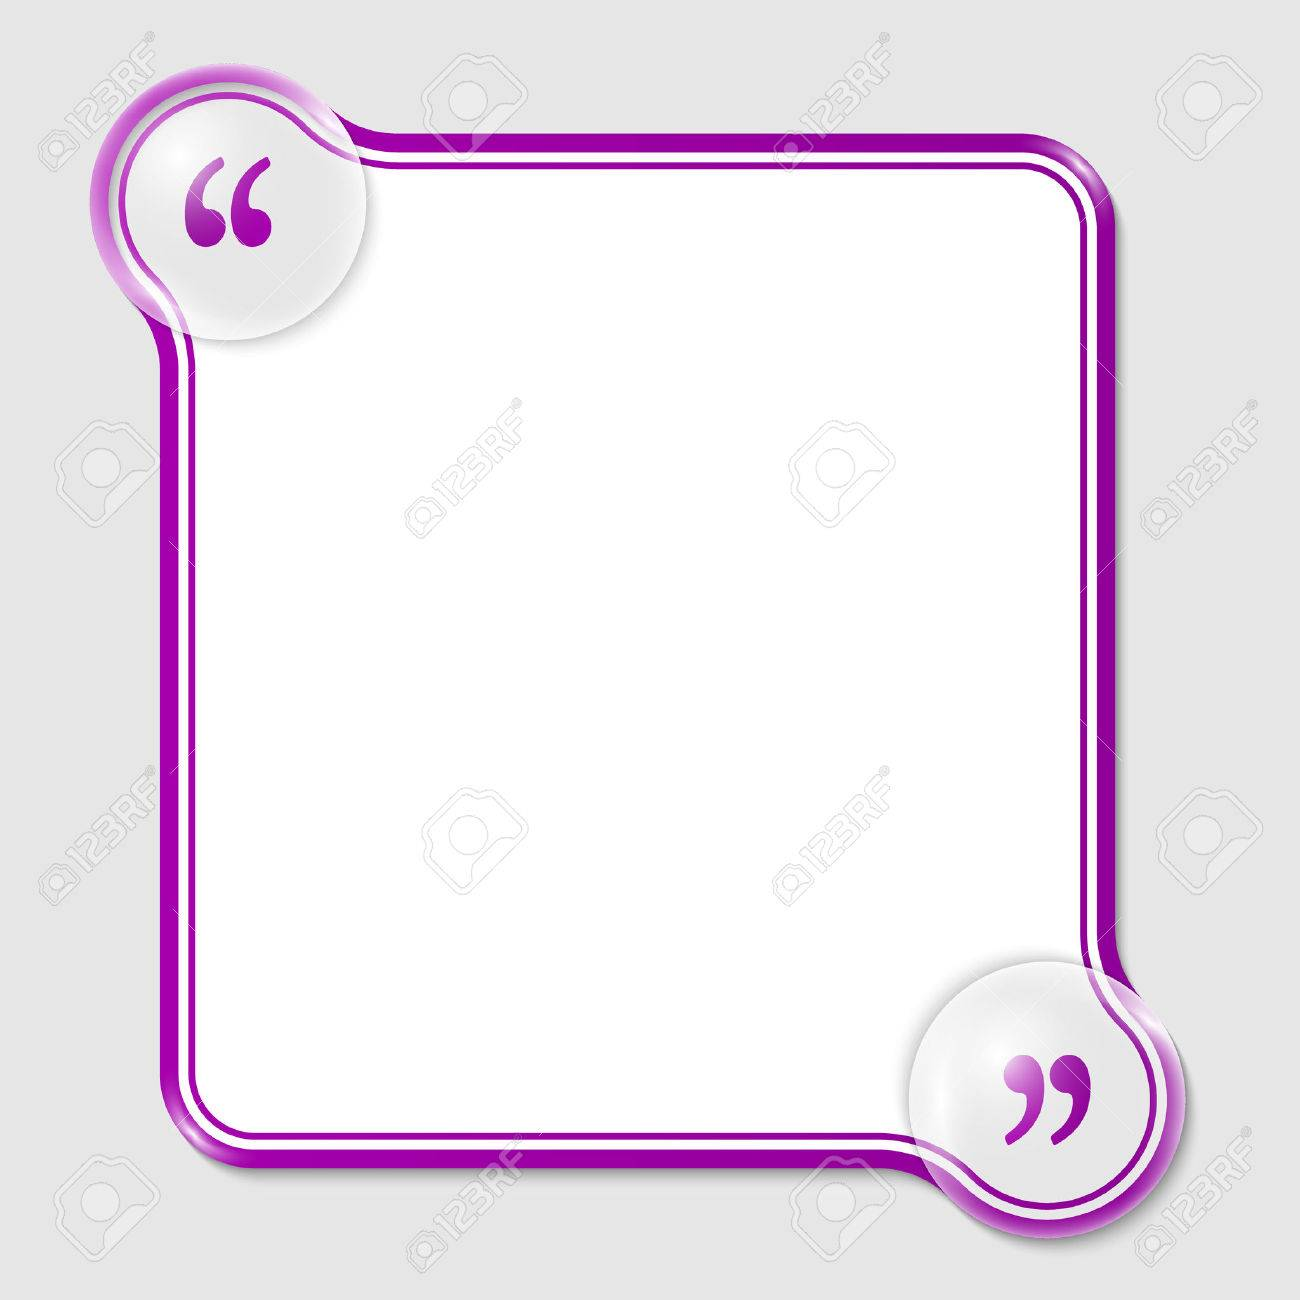 Purple Double Frame For Any Text With Quotation Mark Royalty Free ...